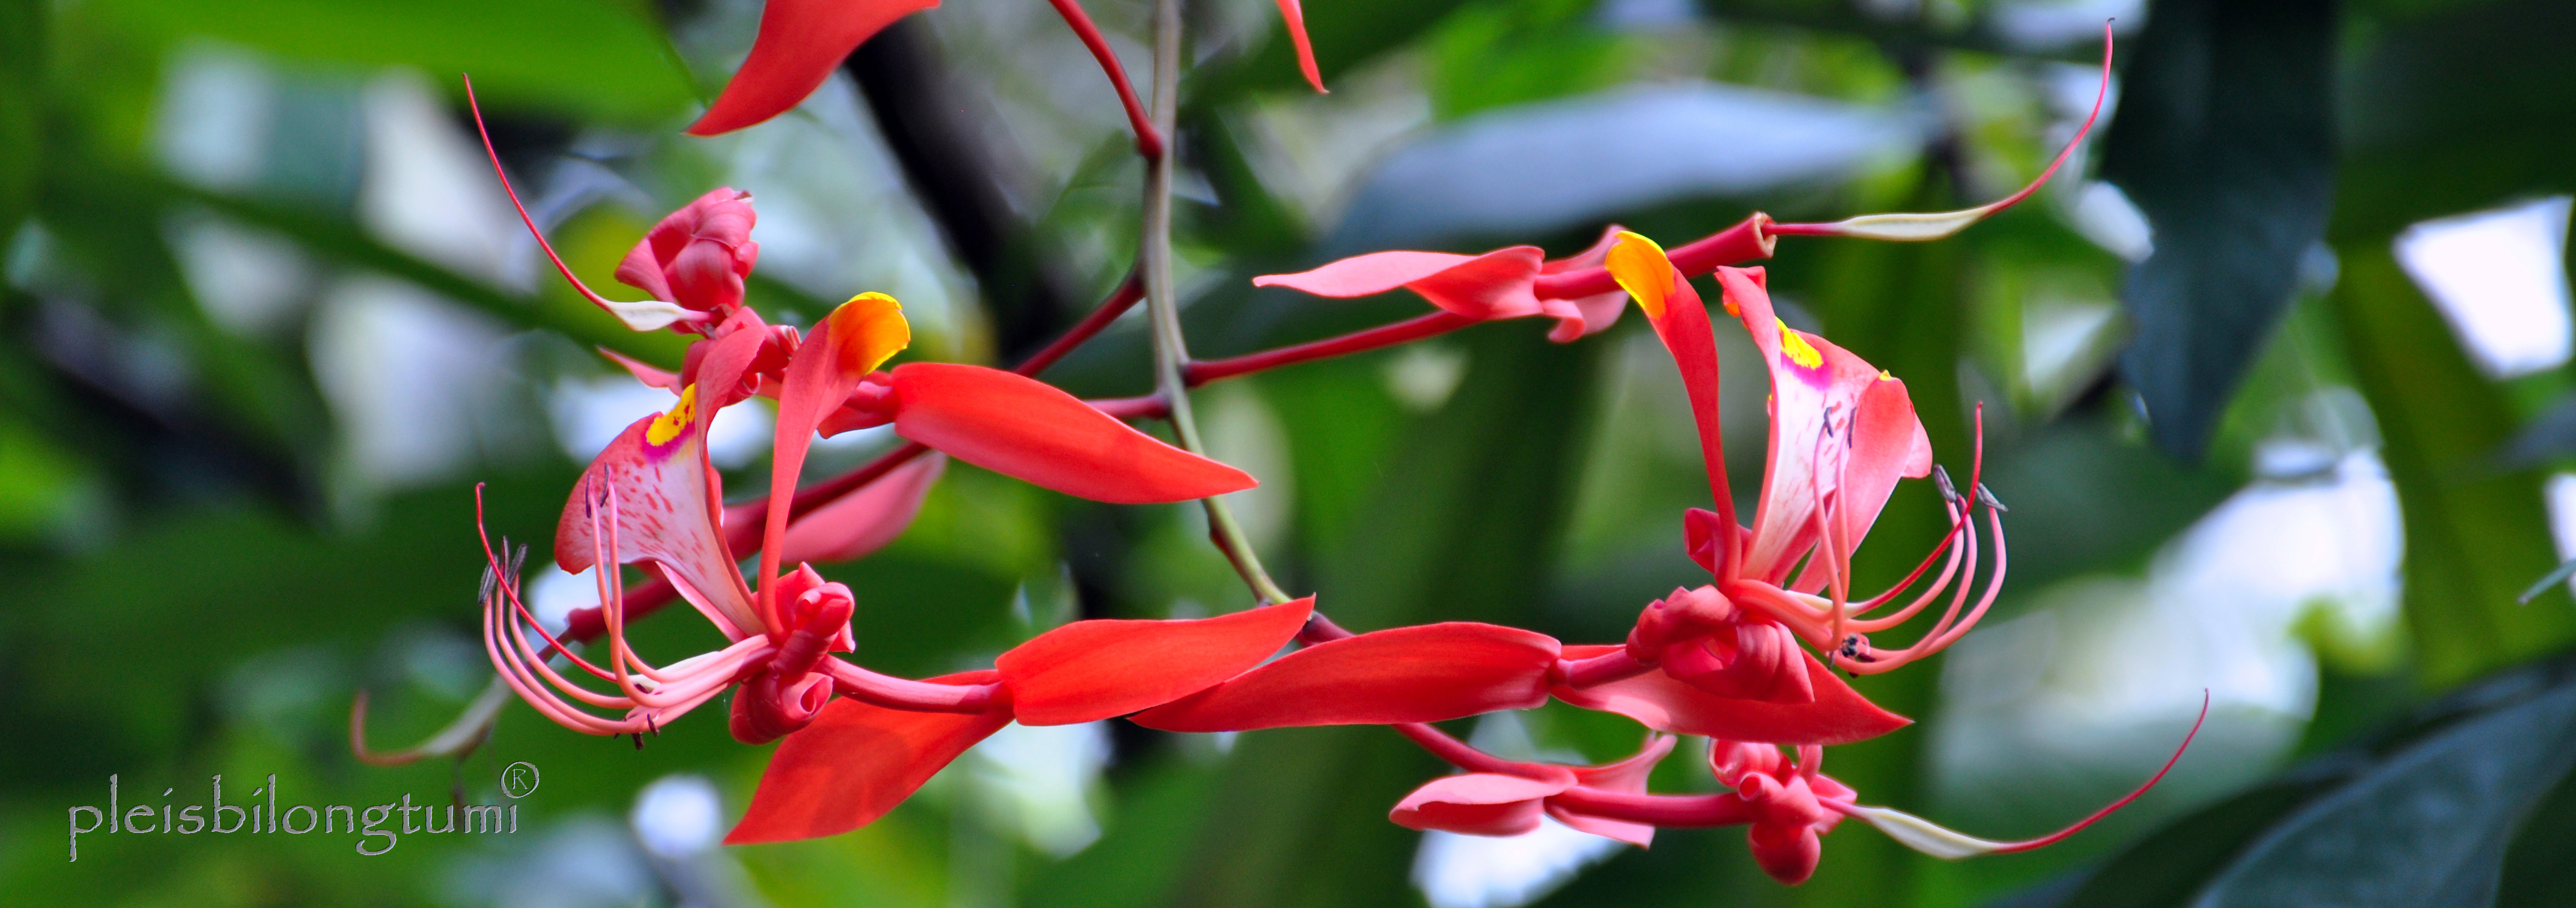 Amherstia nobilis, an orchid-like flowering tree